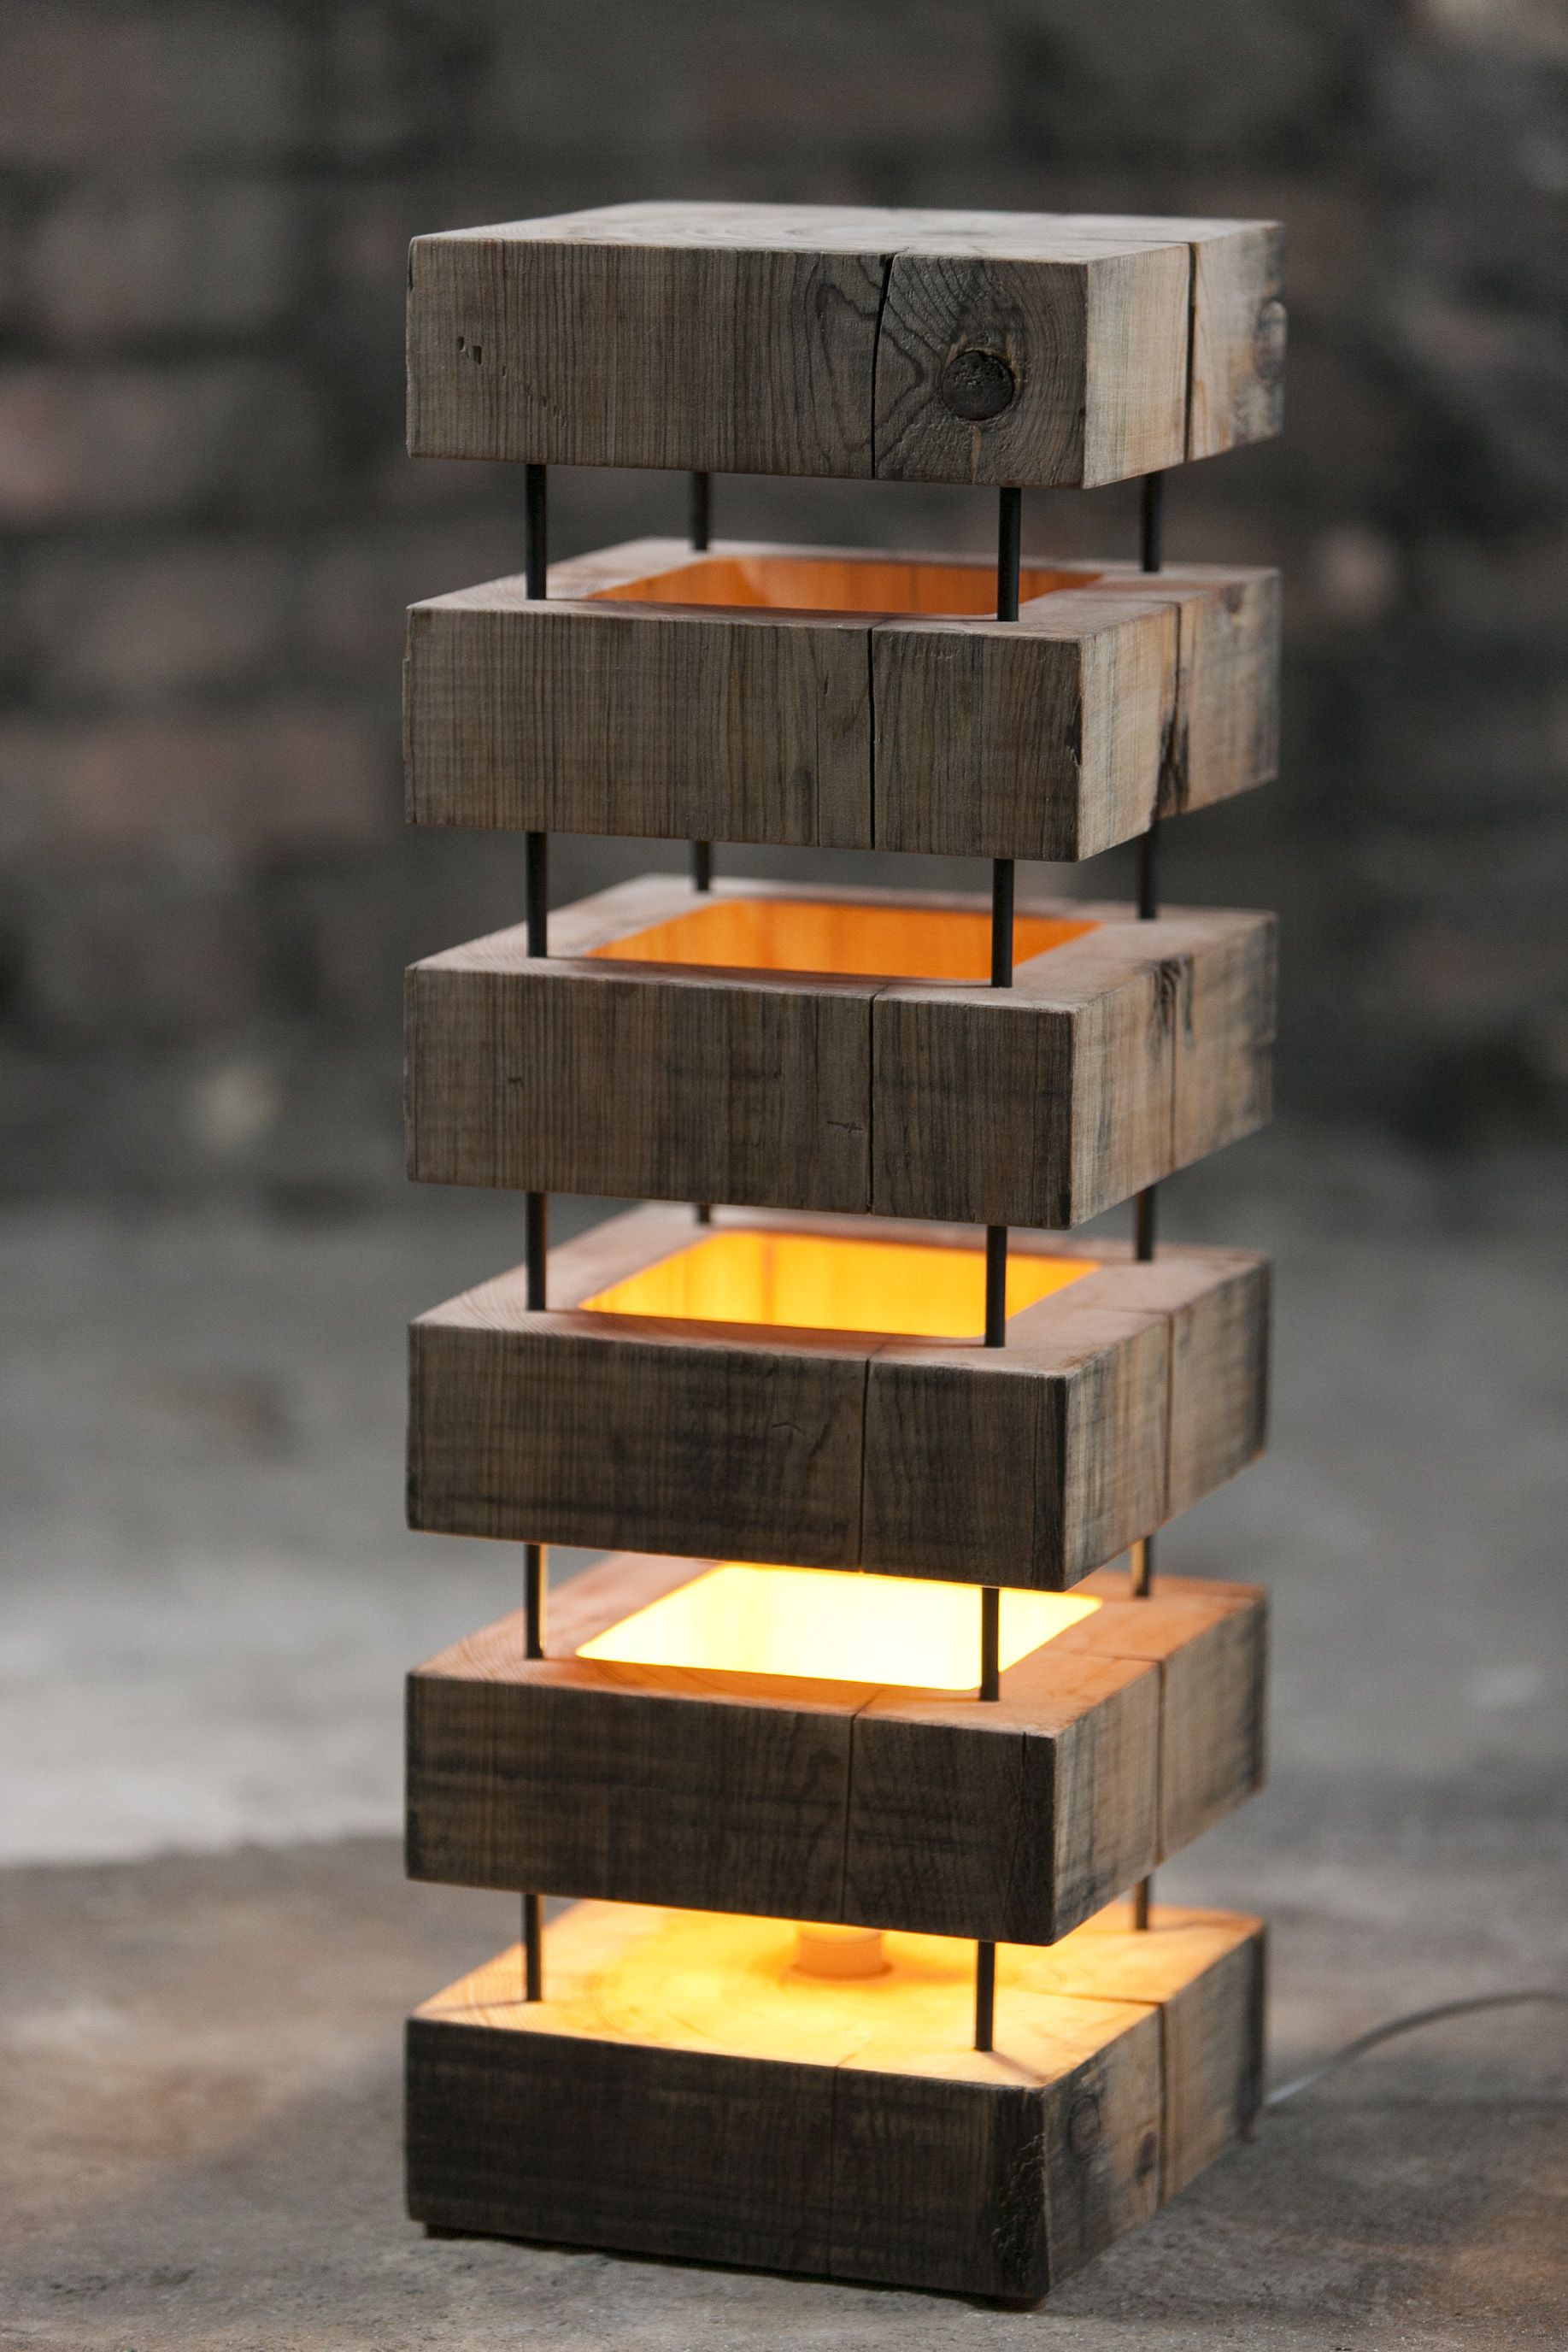 Wooden Lamp Designs Wooden Lamp for Indoors Wood Wood Wooden